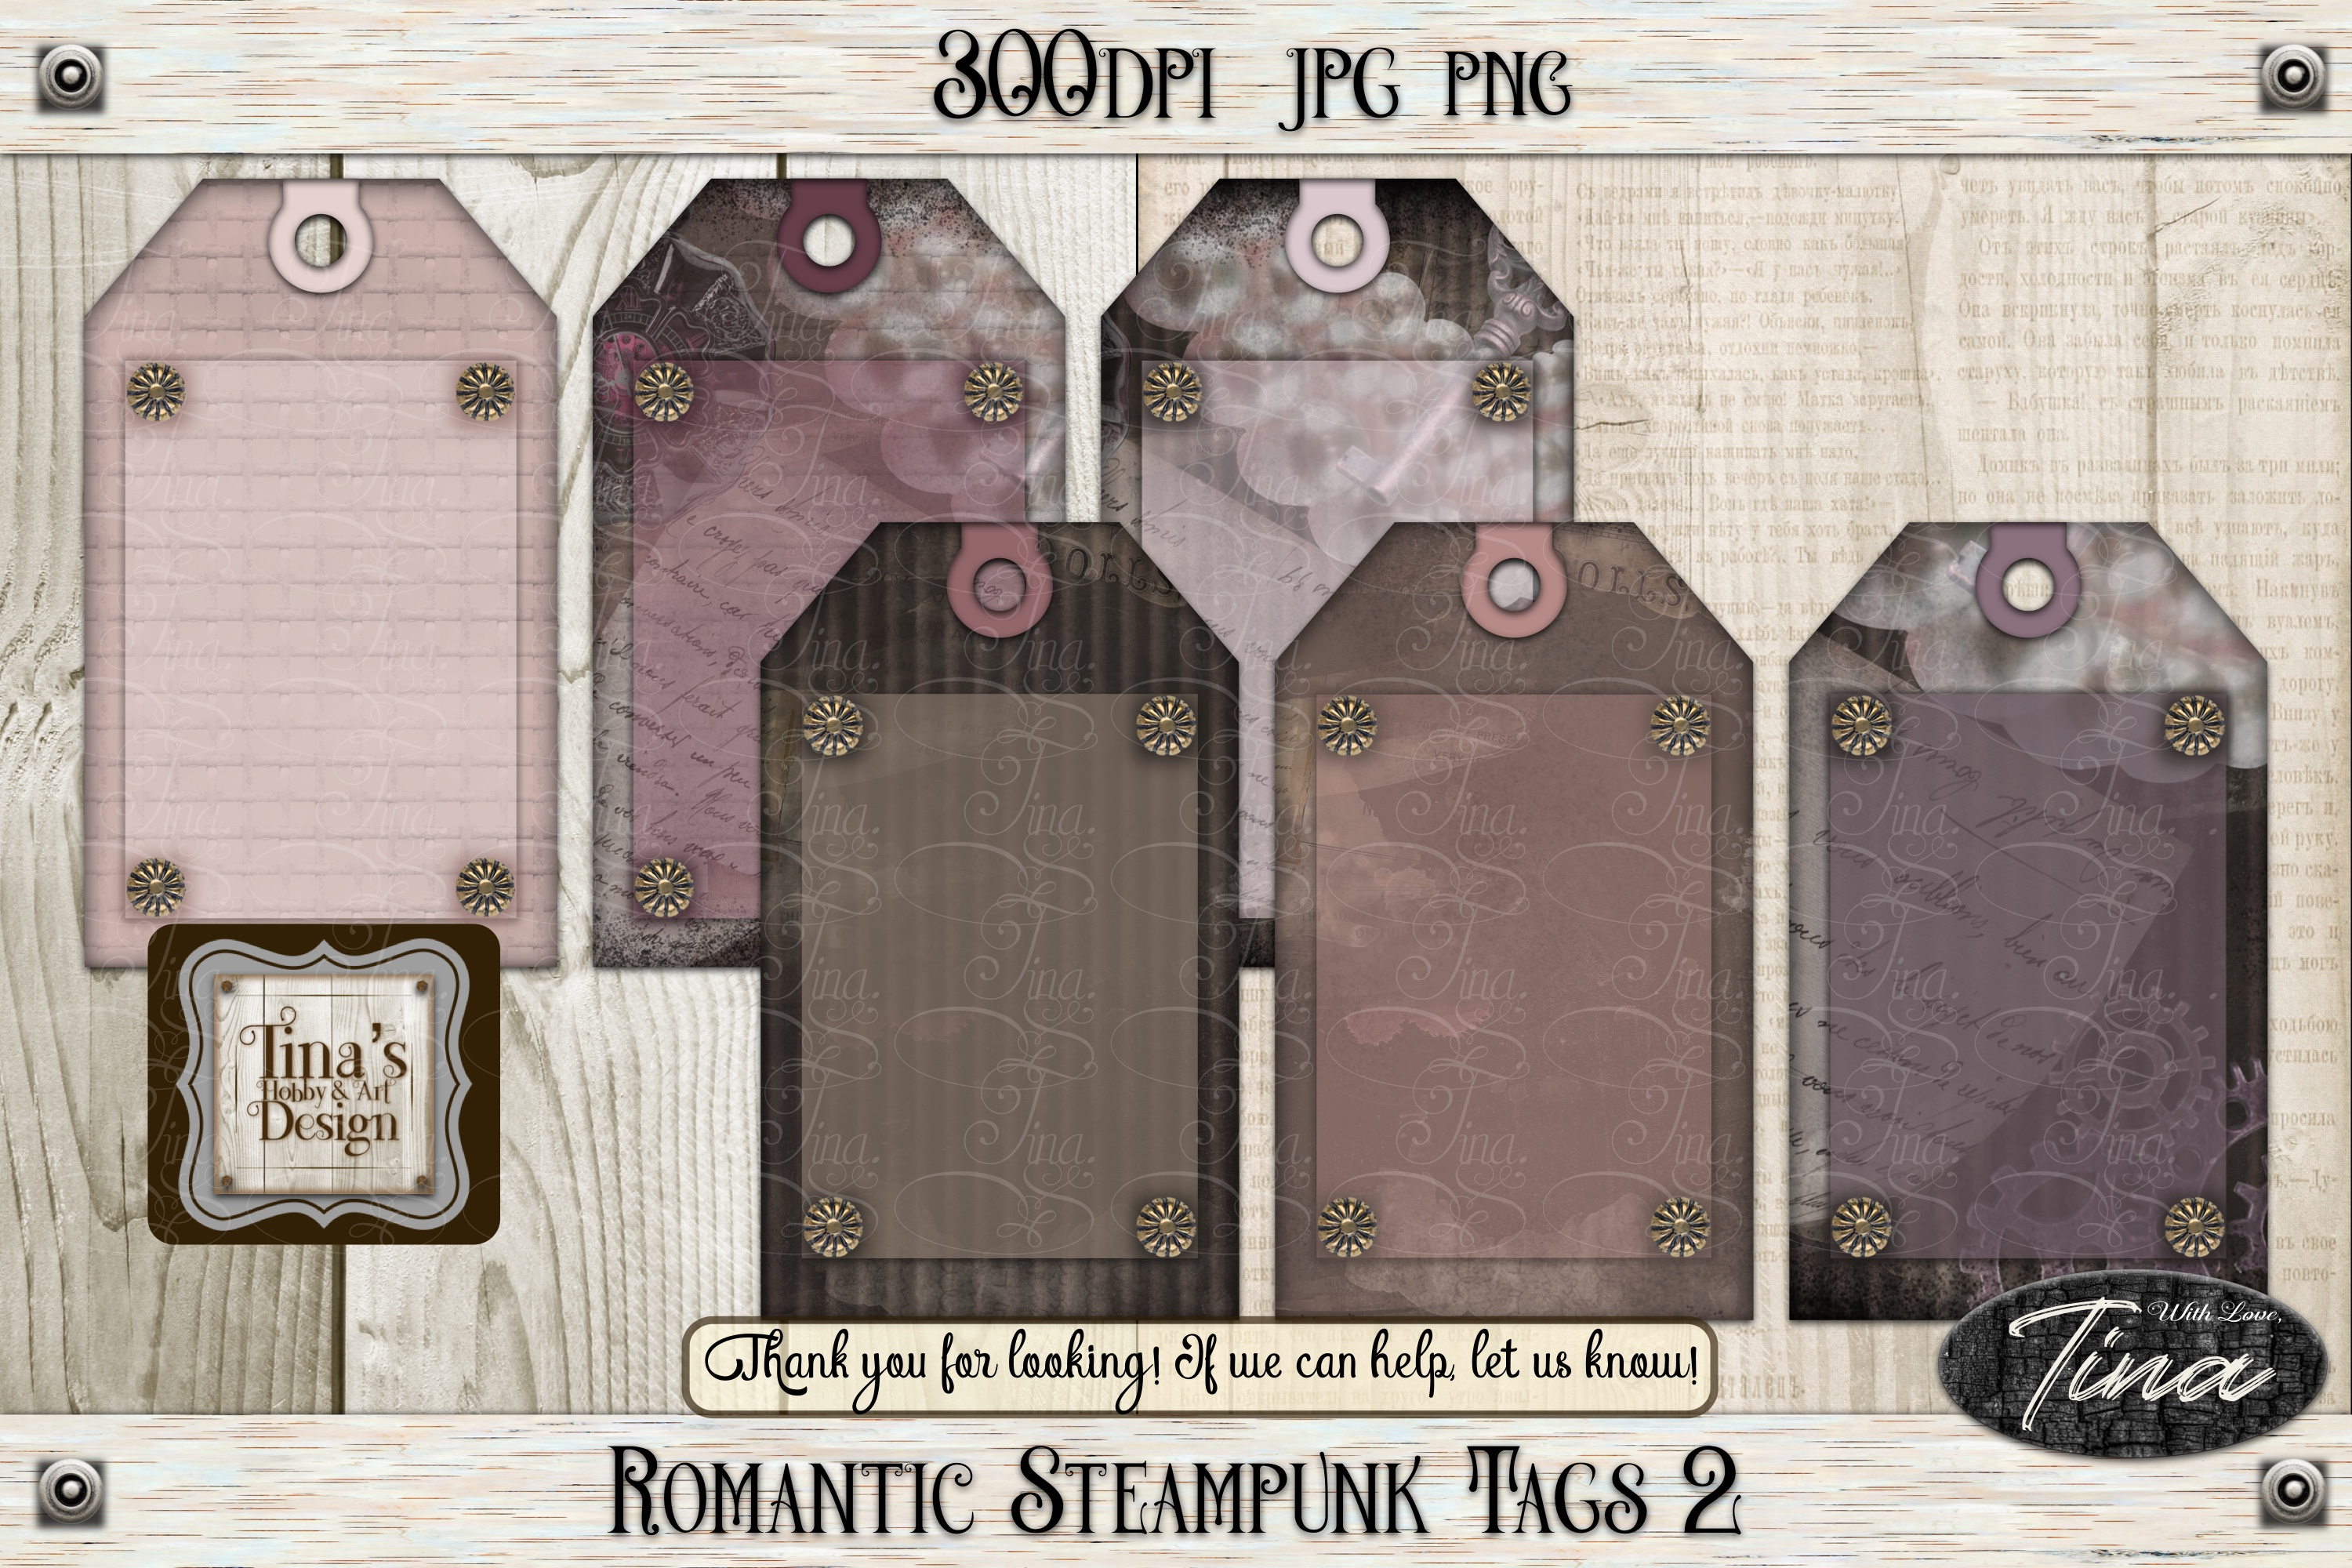 Romantic Steampunk Tags 1 Collage Mauve Grunge 101918RST1 example image 4